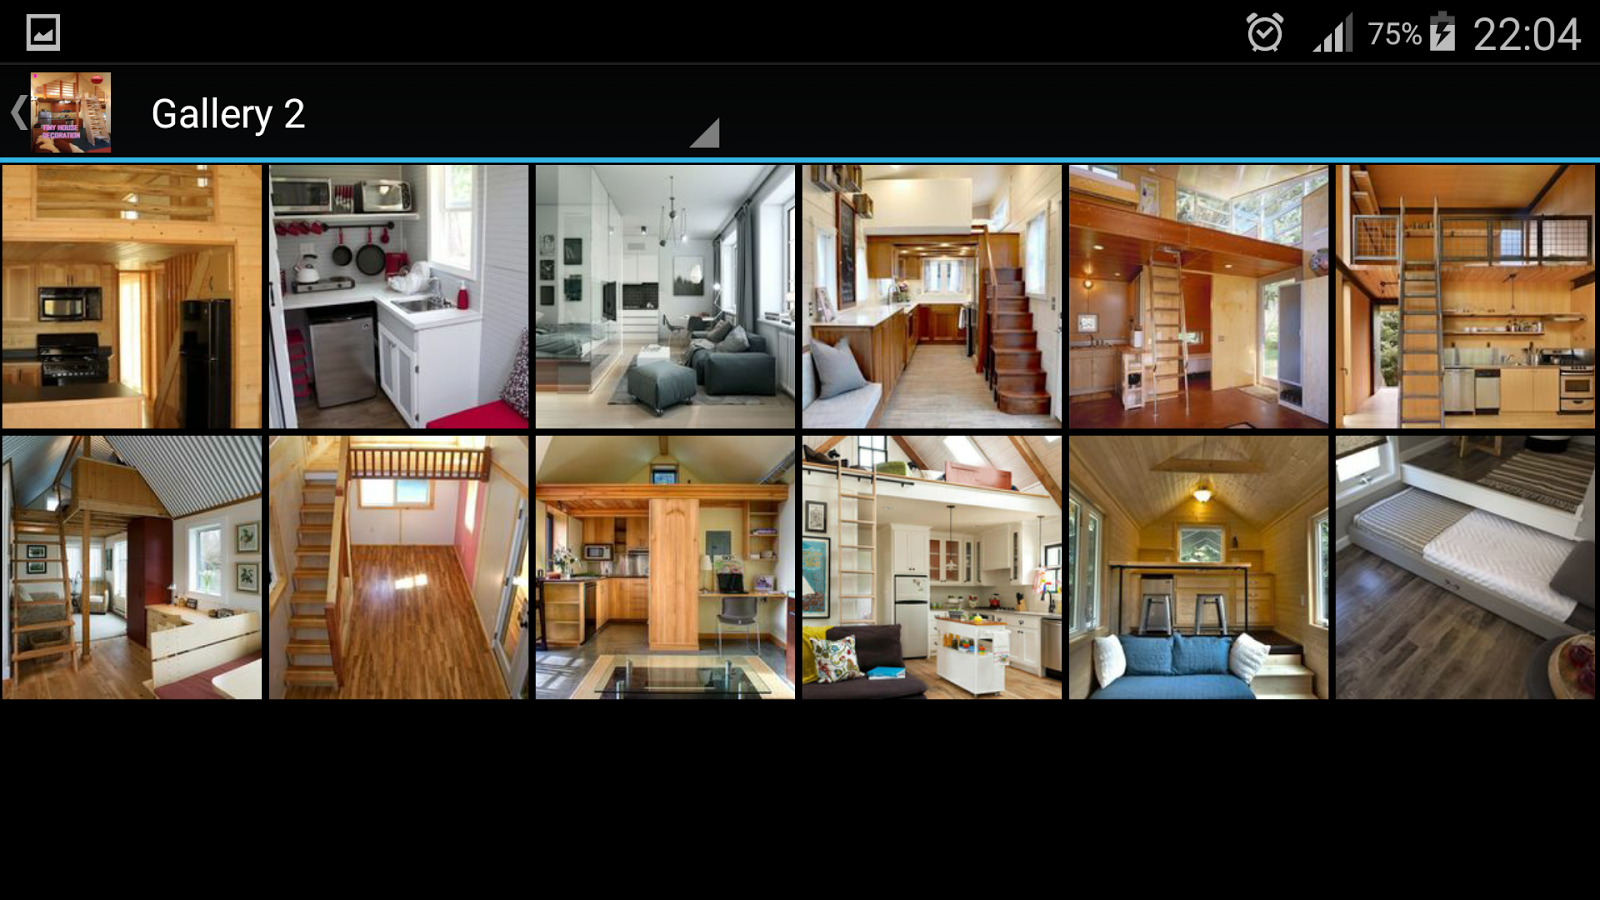 Tiny Houses Android Apps on Google Play